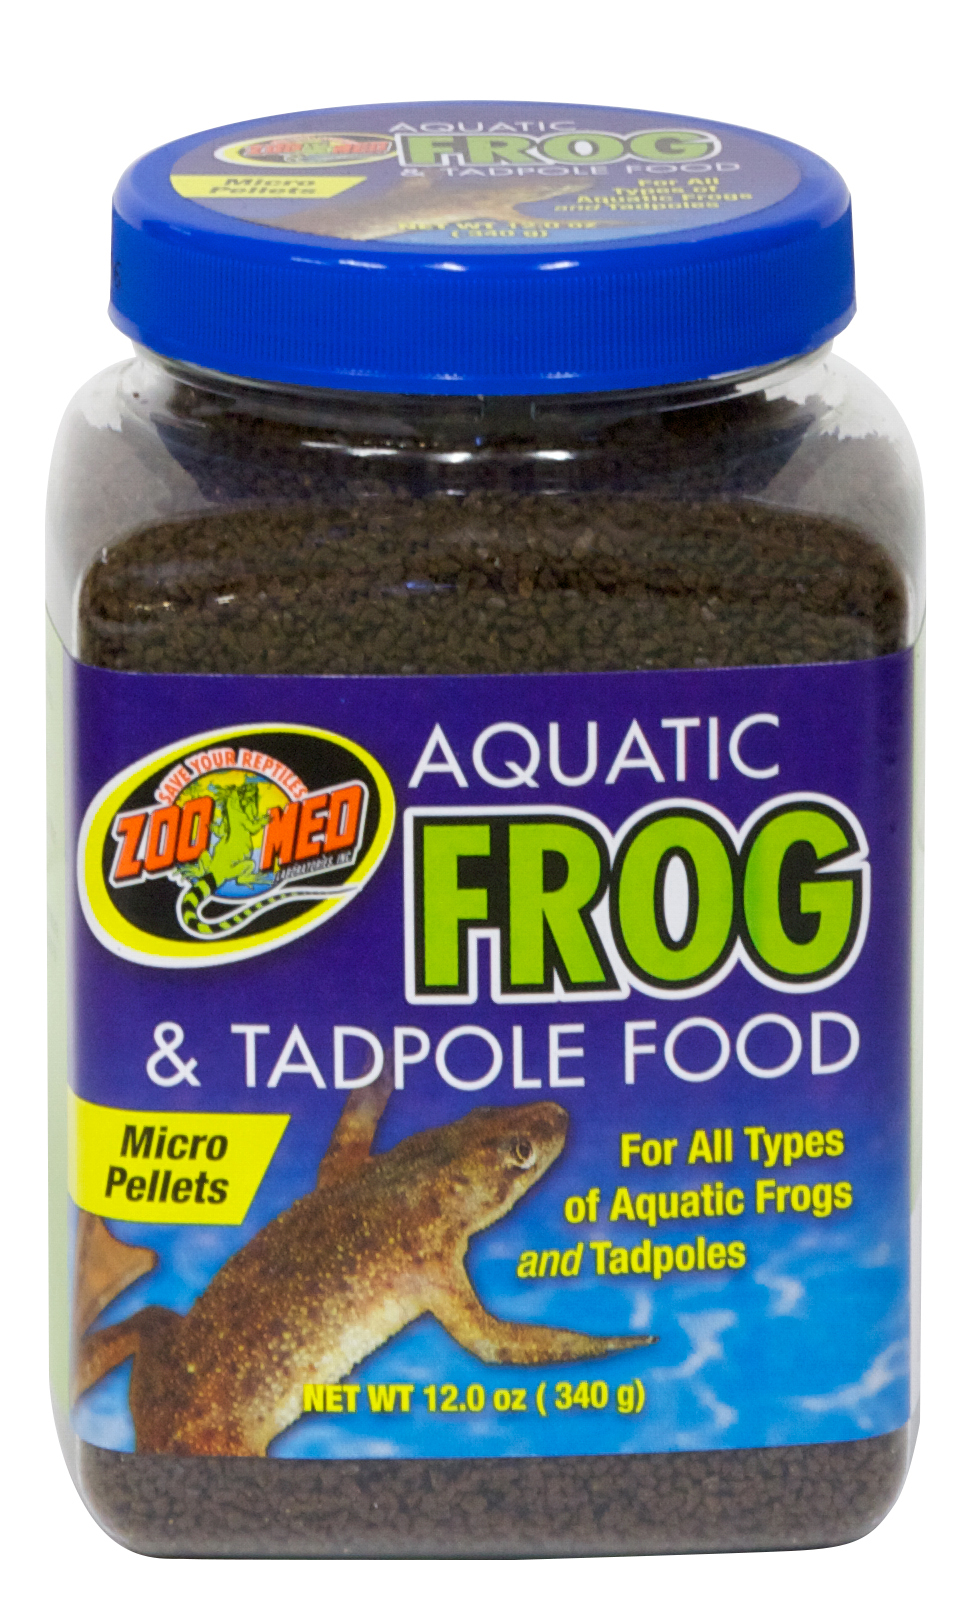 Aquatic Frog & Tadpole Food, 12 oz